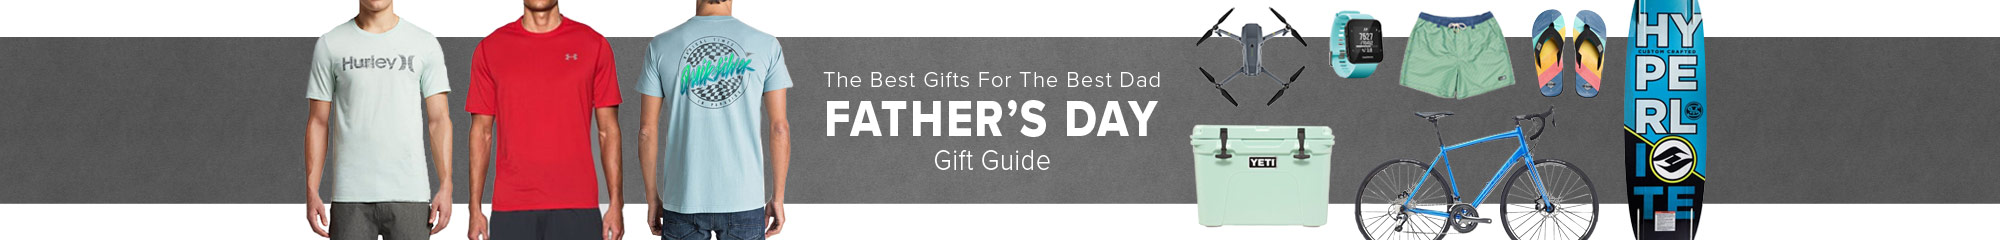 The Best Gifts For The Best Dad. Father's Day Gift Guide